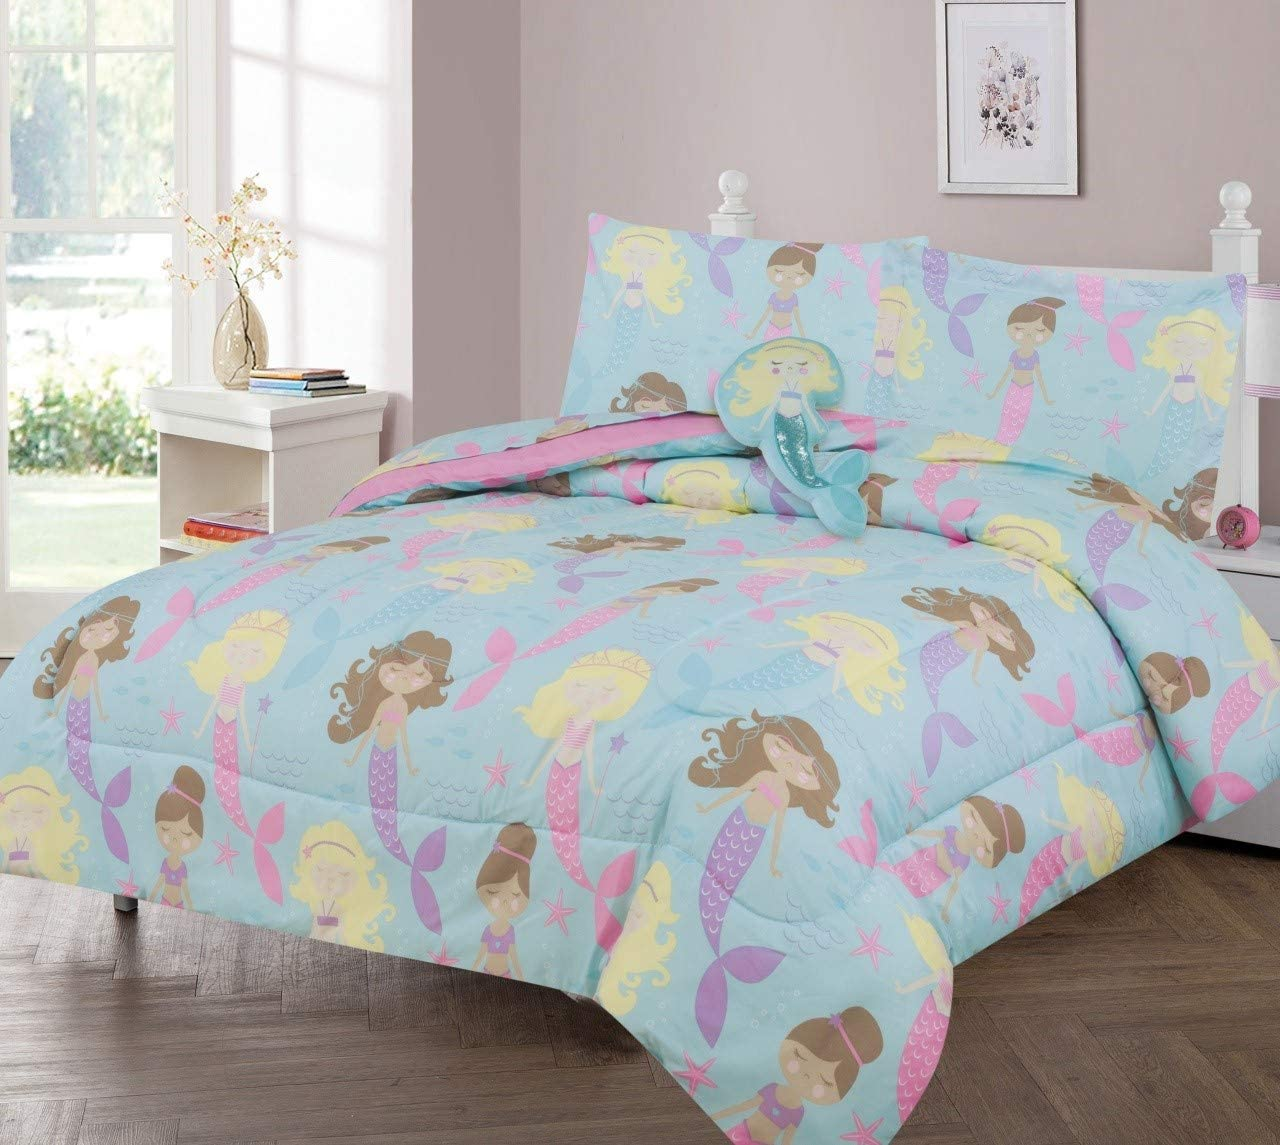 GorgeousHomeLinen Kids 6pc Aqua Blue Sleeping SEA Princess in The Water Ocean Dreaming Twin Bed in Bag Comforter with Matching Sheet Set with Pillow Friend for Girls